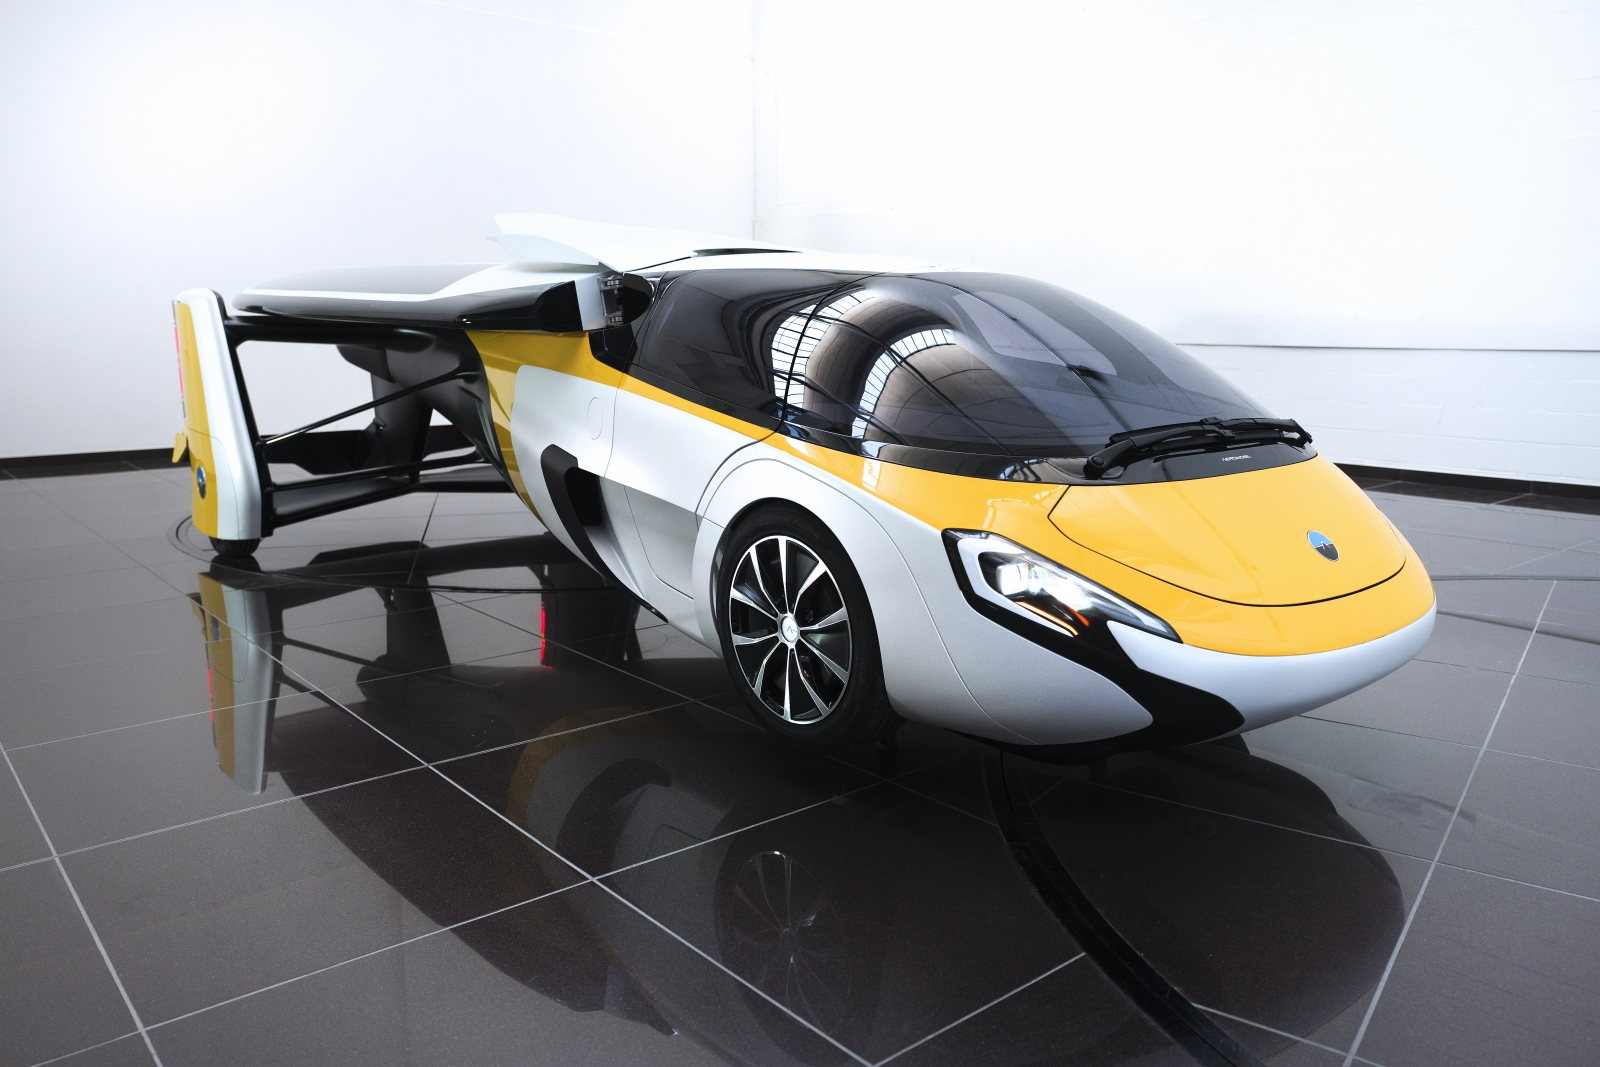 Slovakian firm to sell flying car